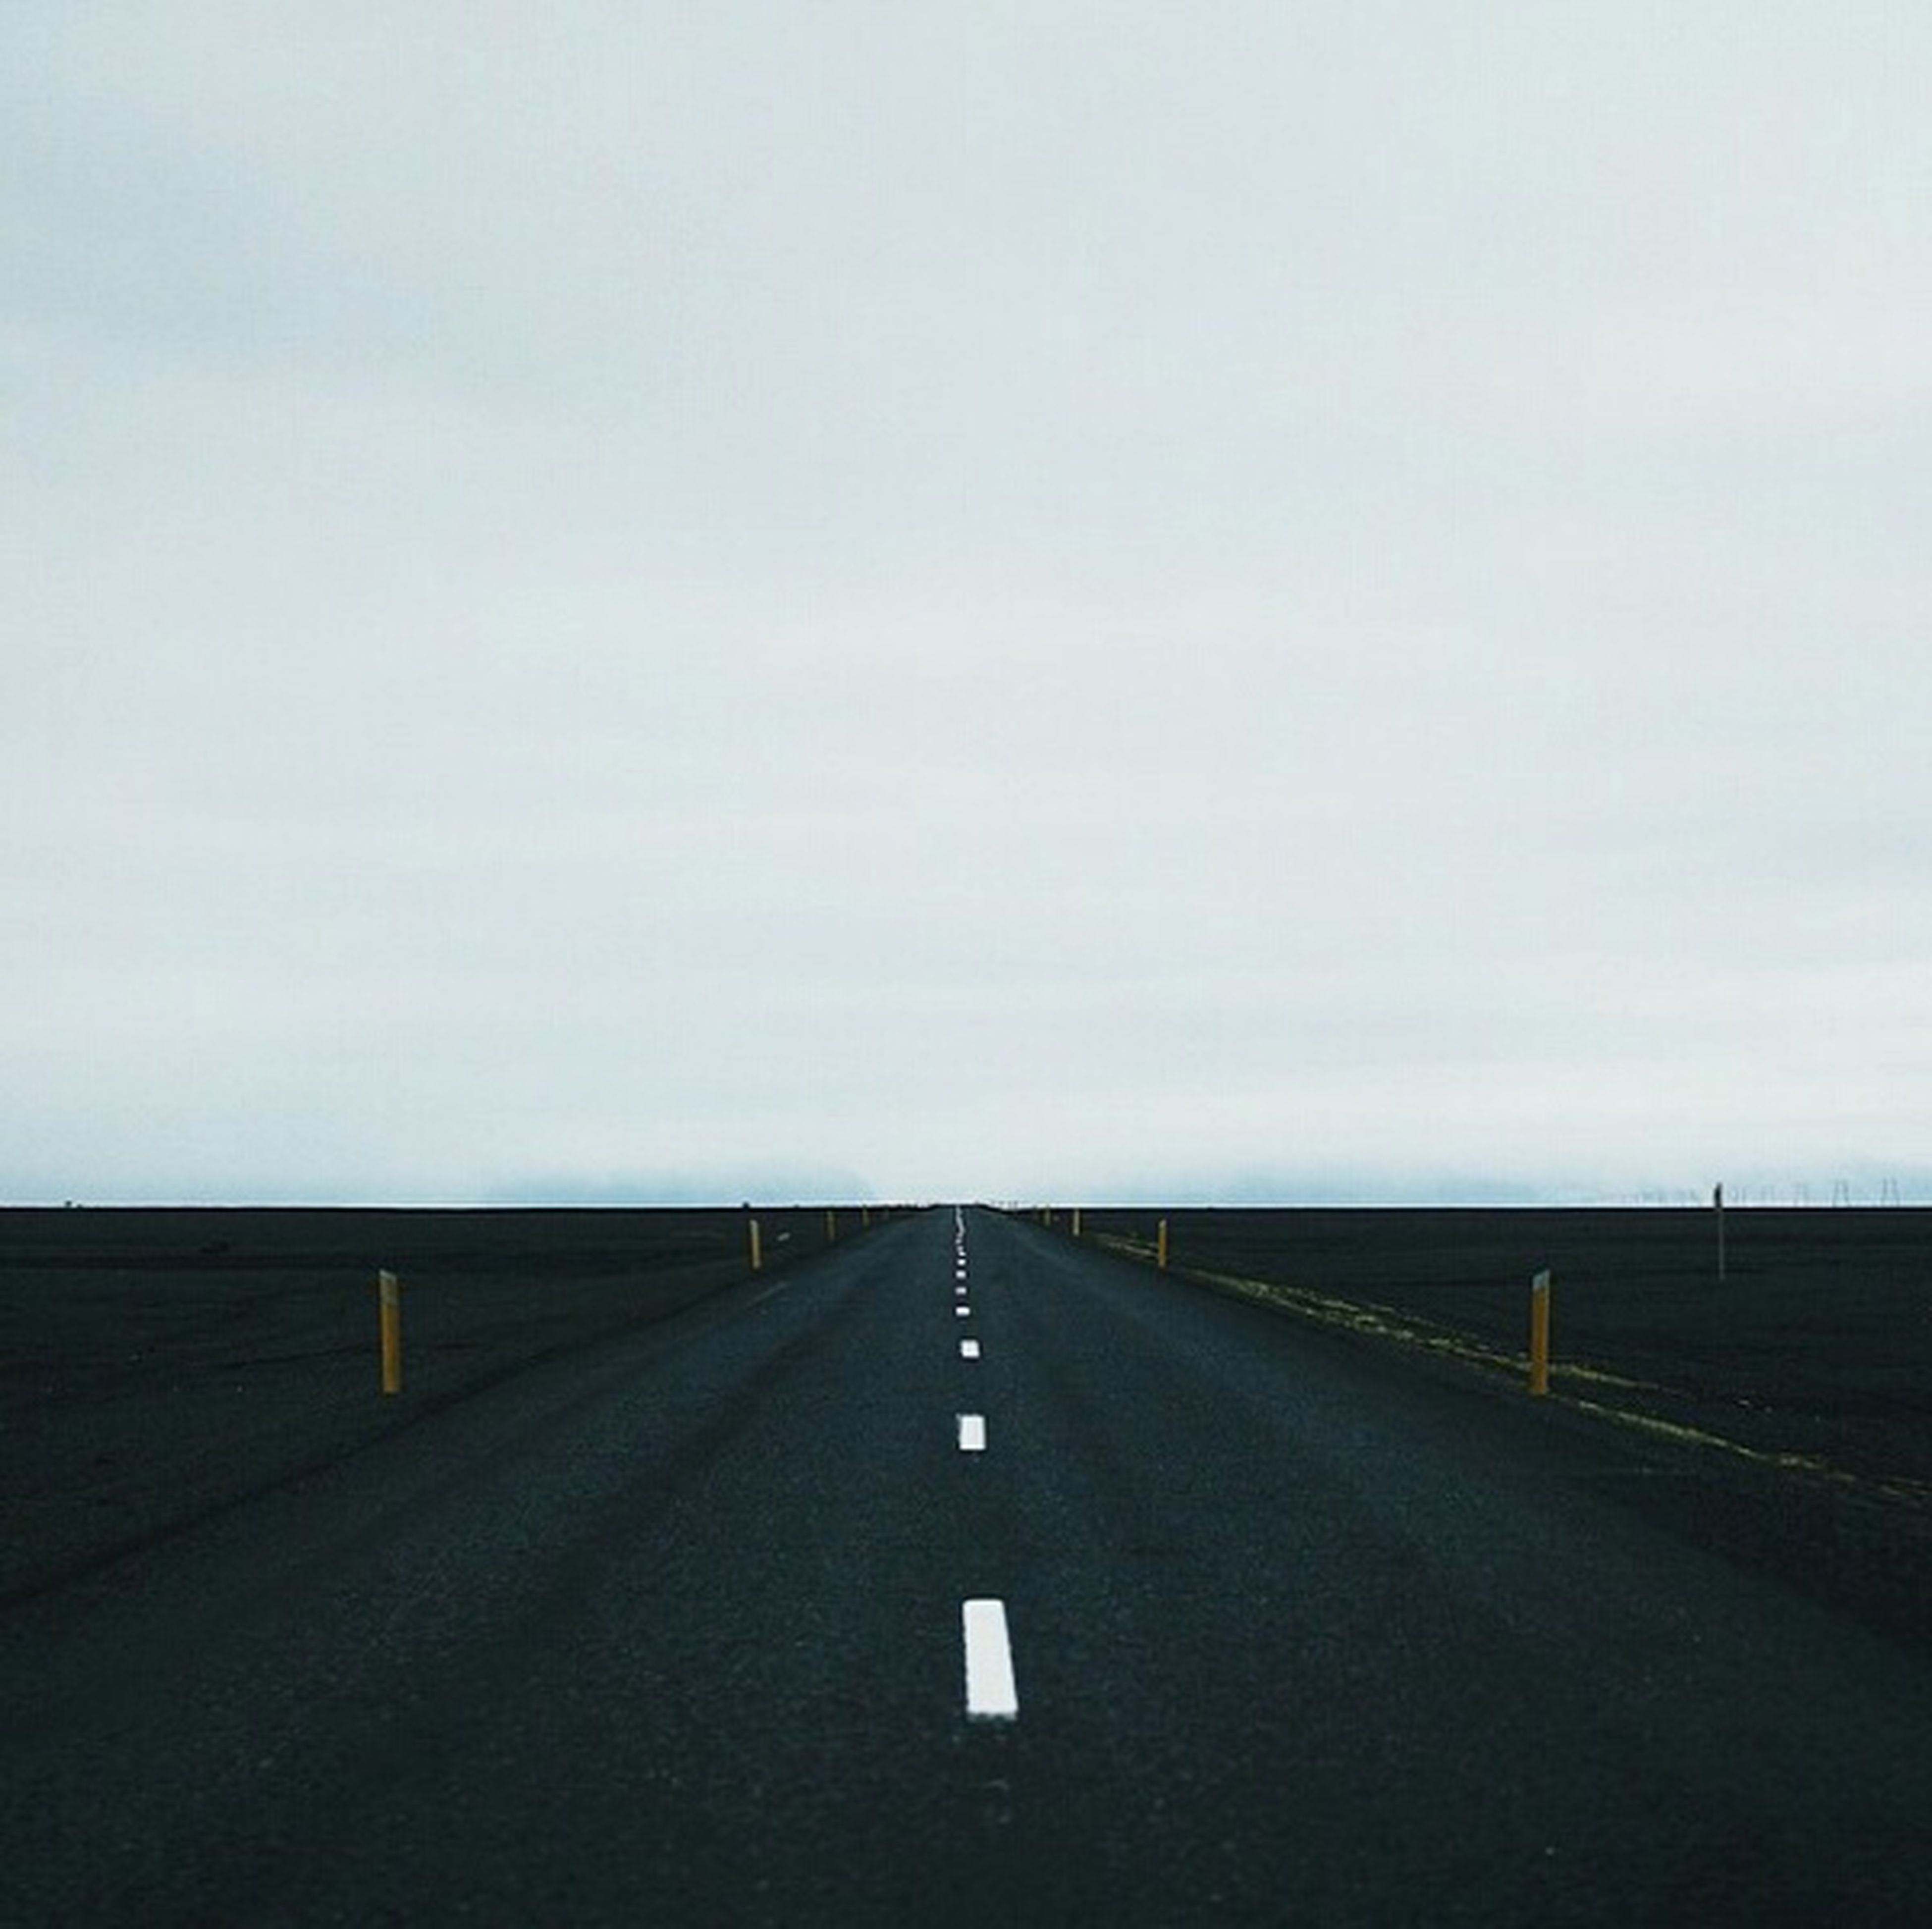 the way forward, road, road marking, diminishing perspective, vanishing point, transportation, sky, empty, empty road, long, asphalt, copy space, street, tranquility, country road, tranquil scene, outdoors, no people, nature, surface level